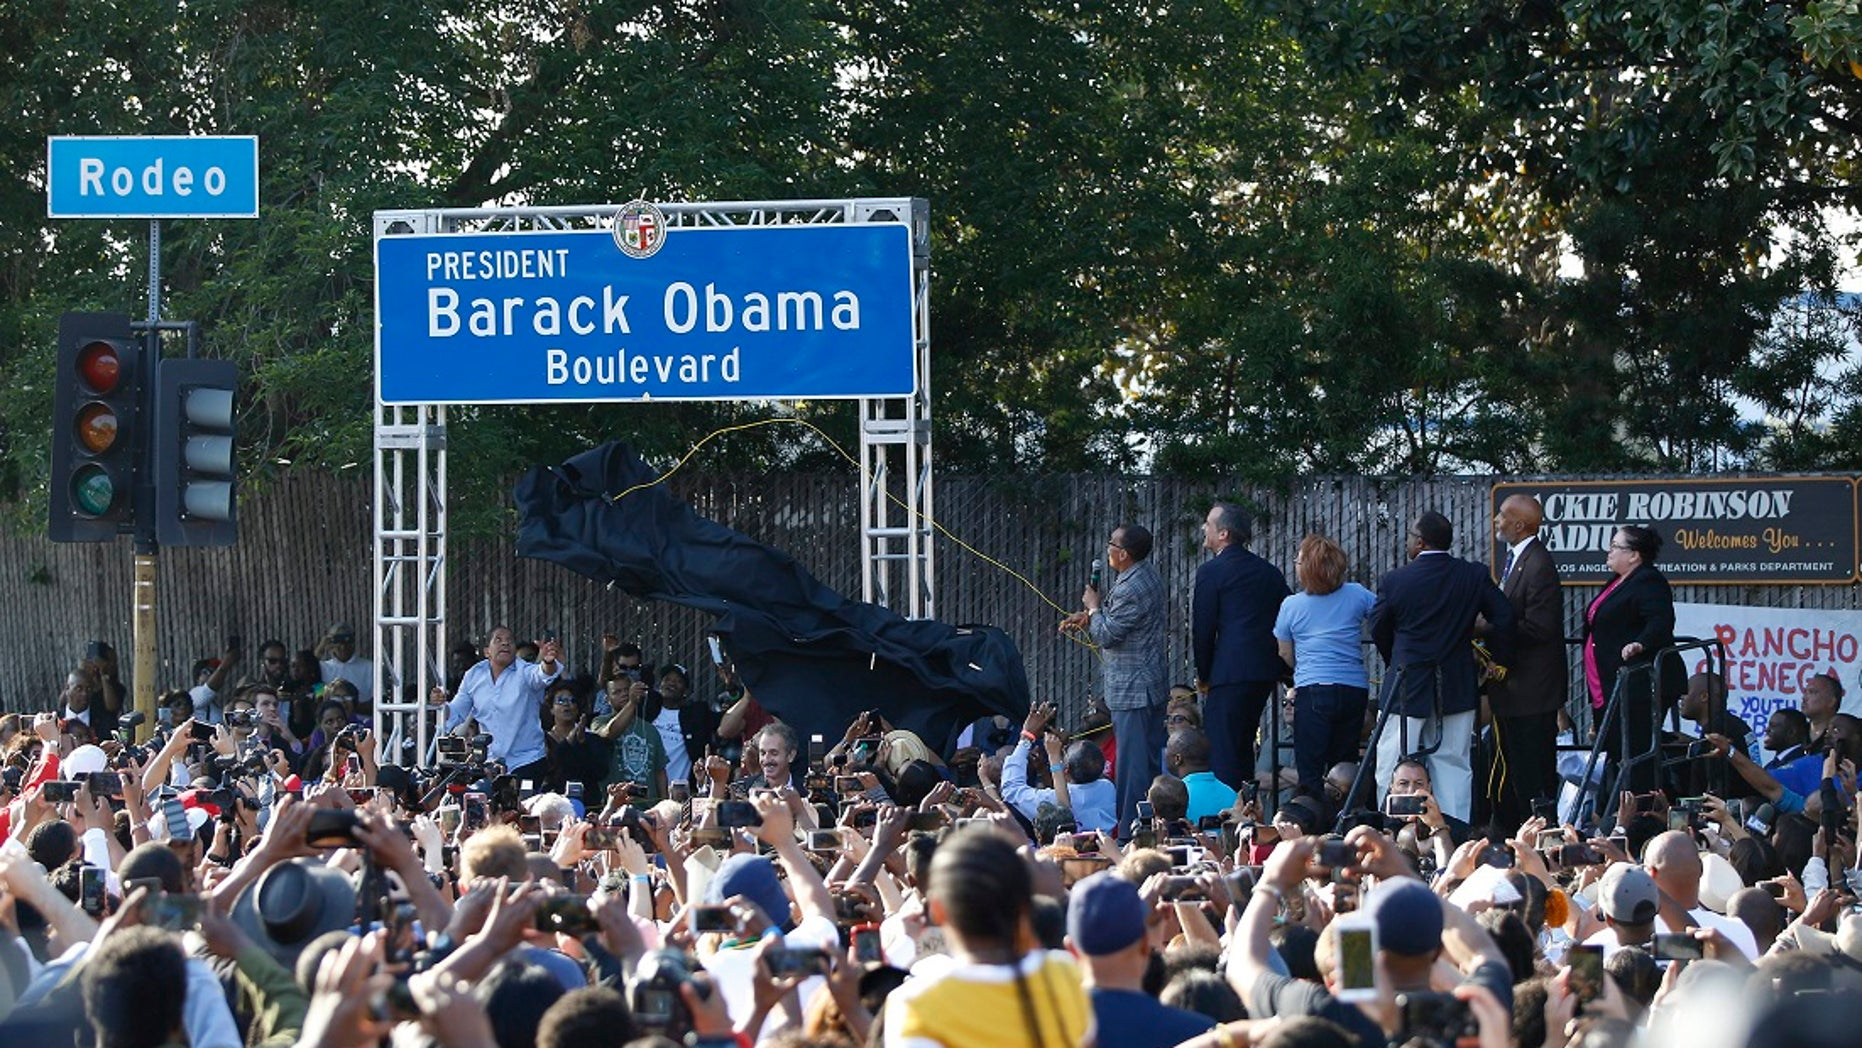 """City officials, at podium on right, unveil the """"President Barack Obama Boulevard"""" sign in Los Angeles on Saturday. (Associated Press)"""